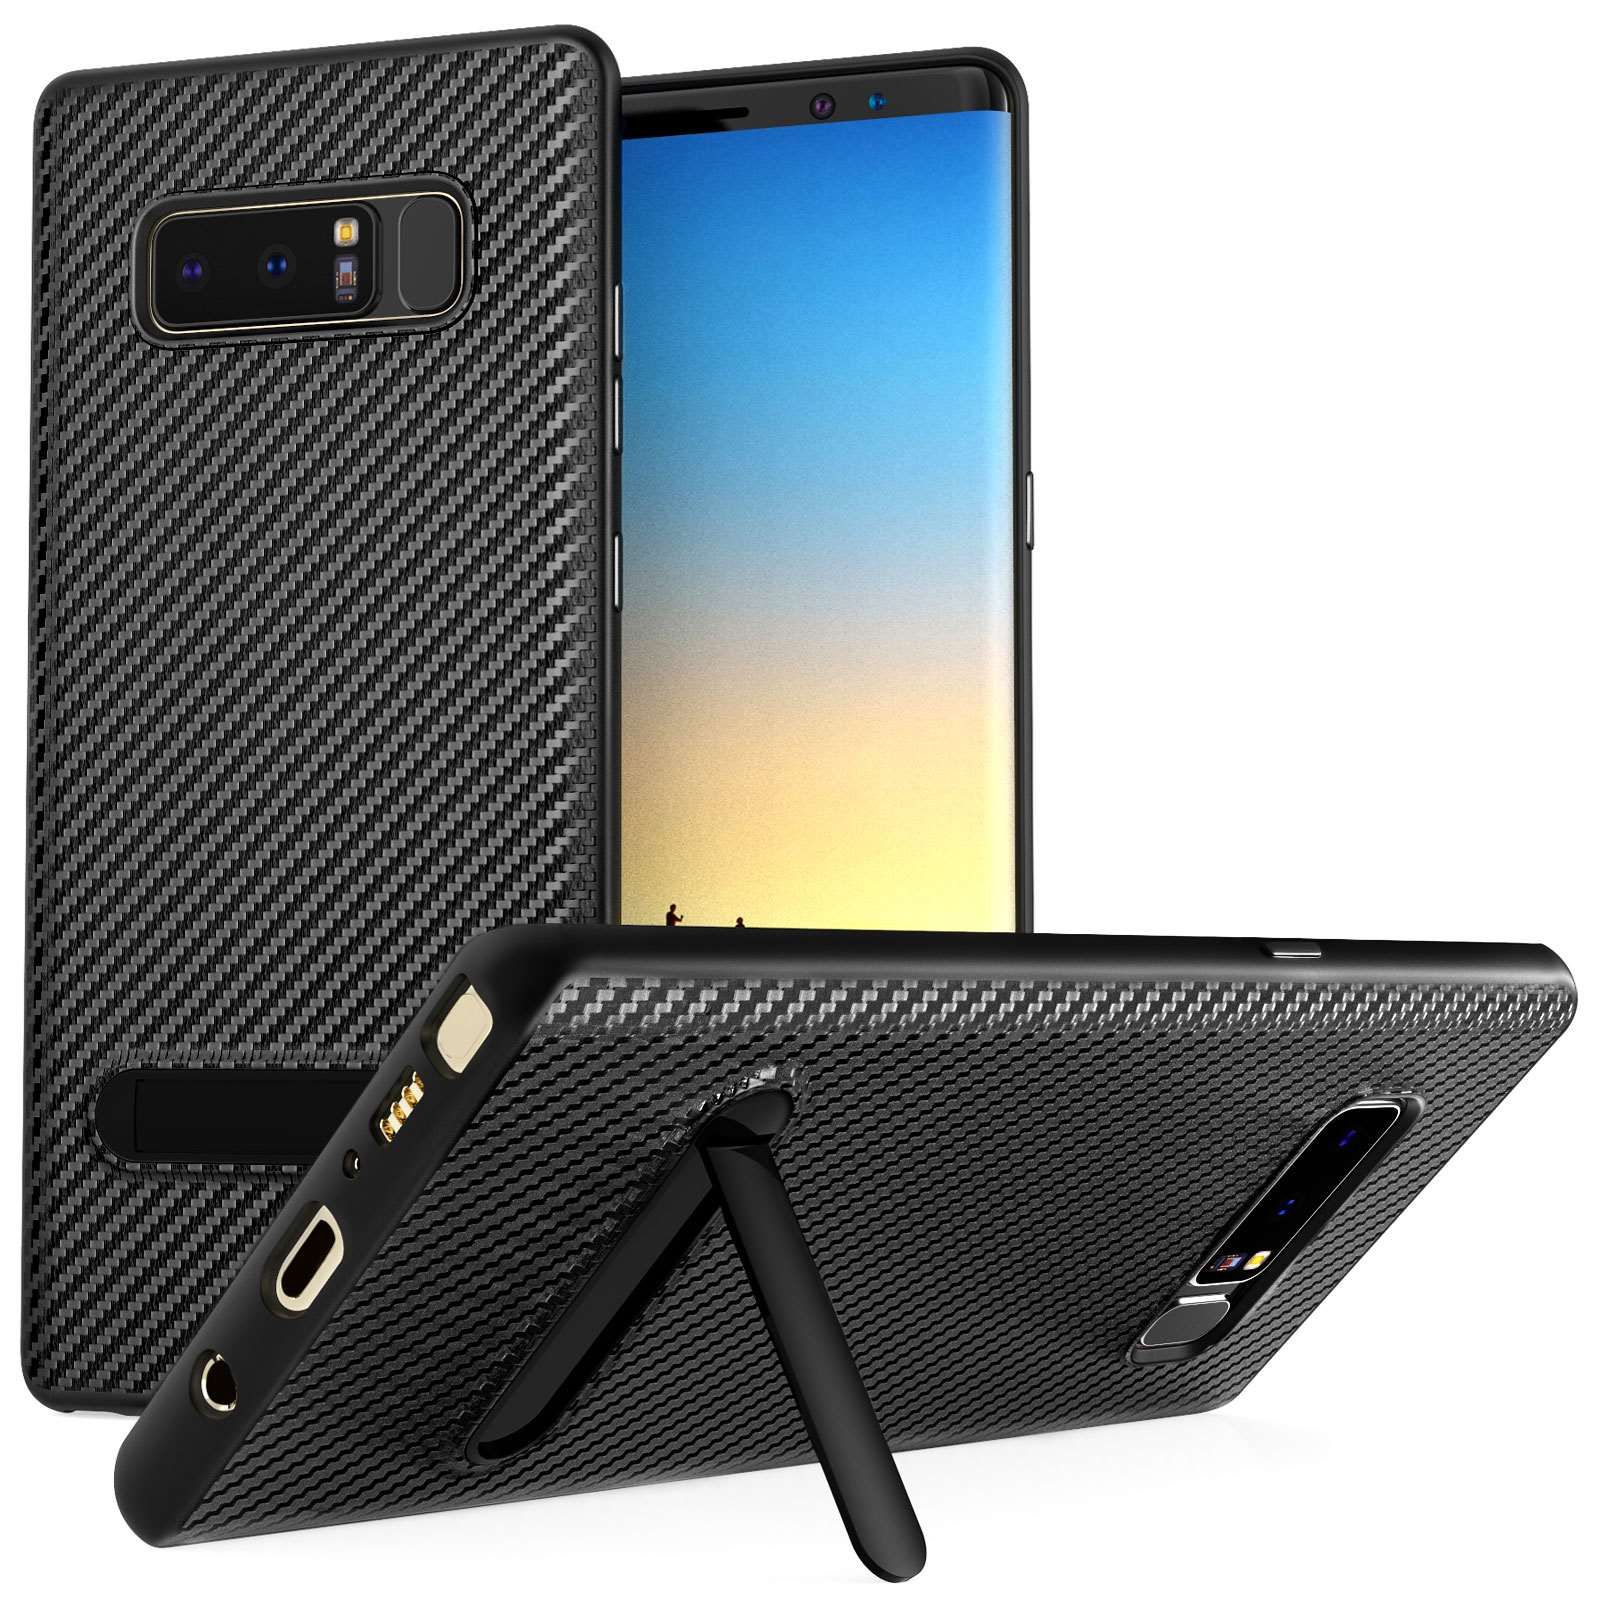 Centopi Θήκη Σιλικόνης Carbon Fibre με Stand για Samsung Galaxy Note 8 - Black (CEN-SAM-264)